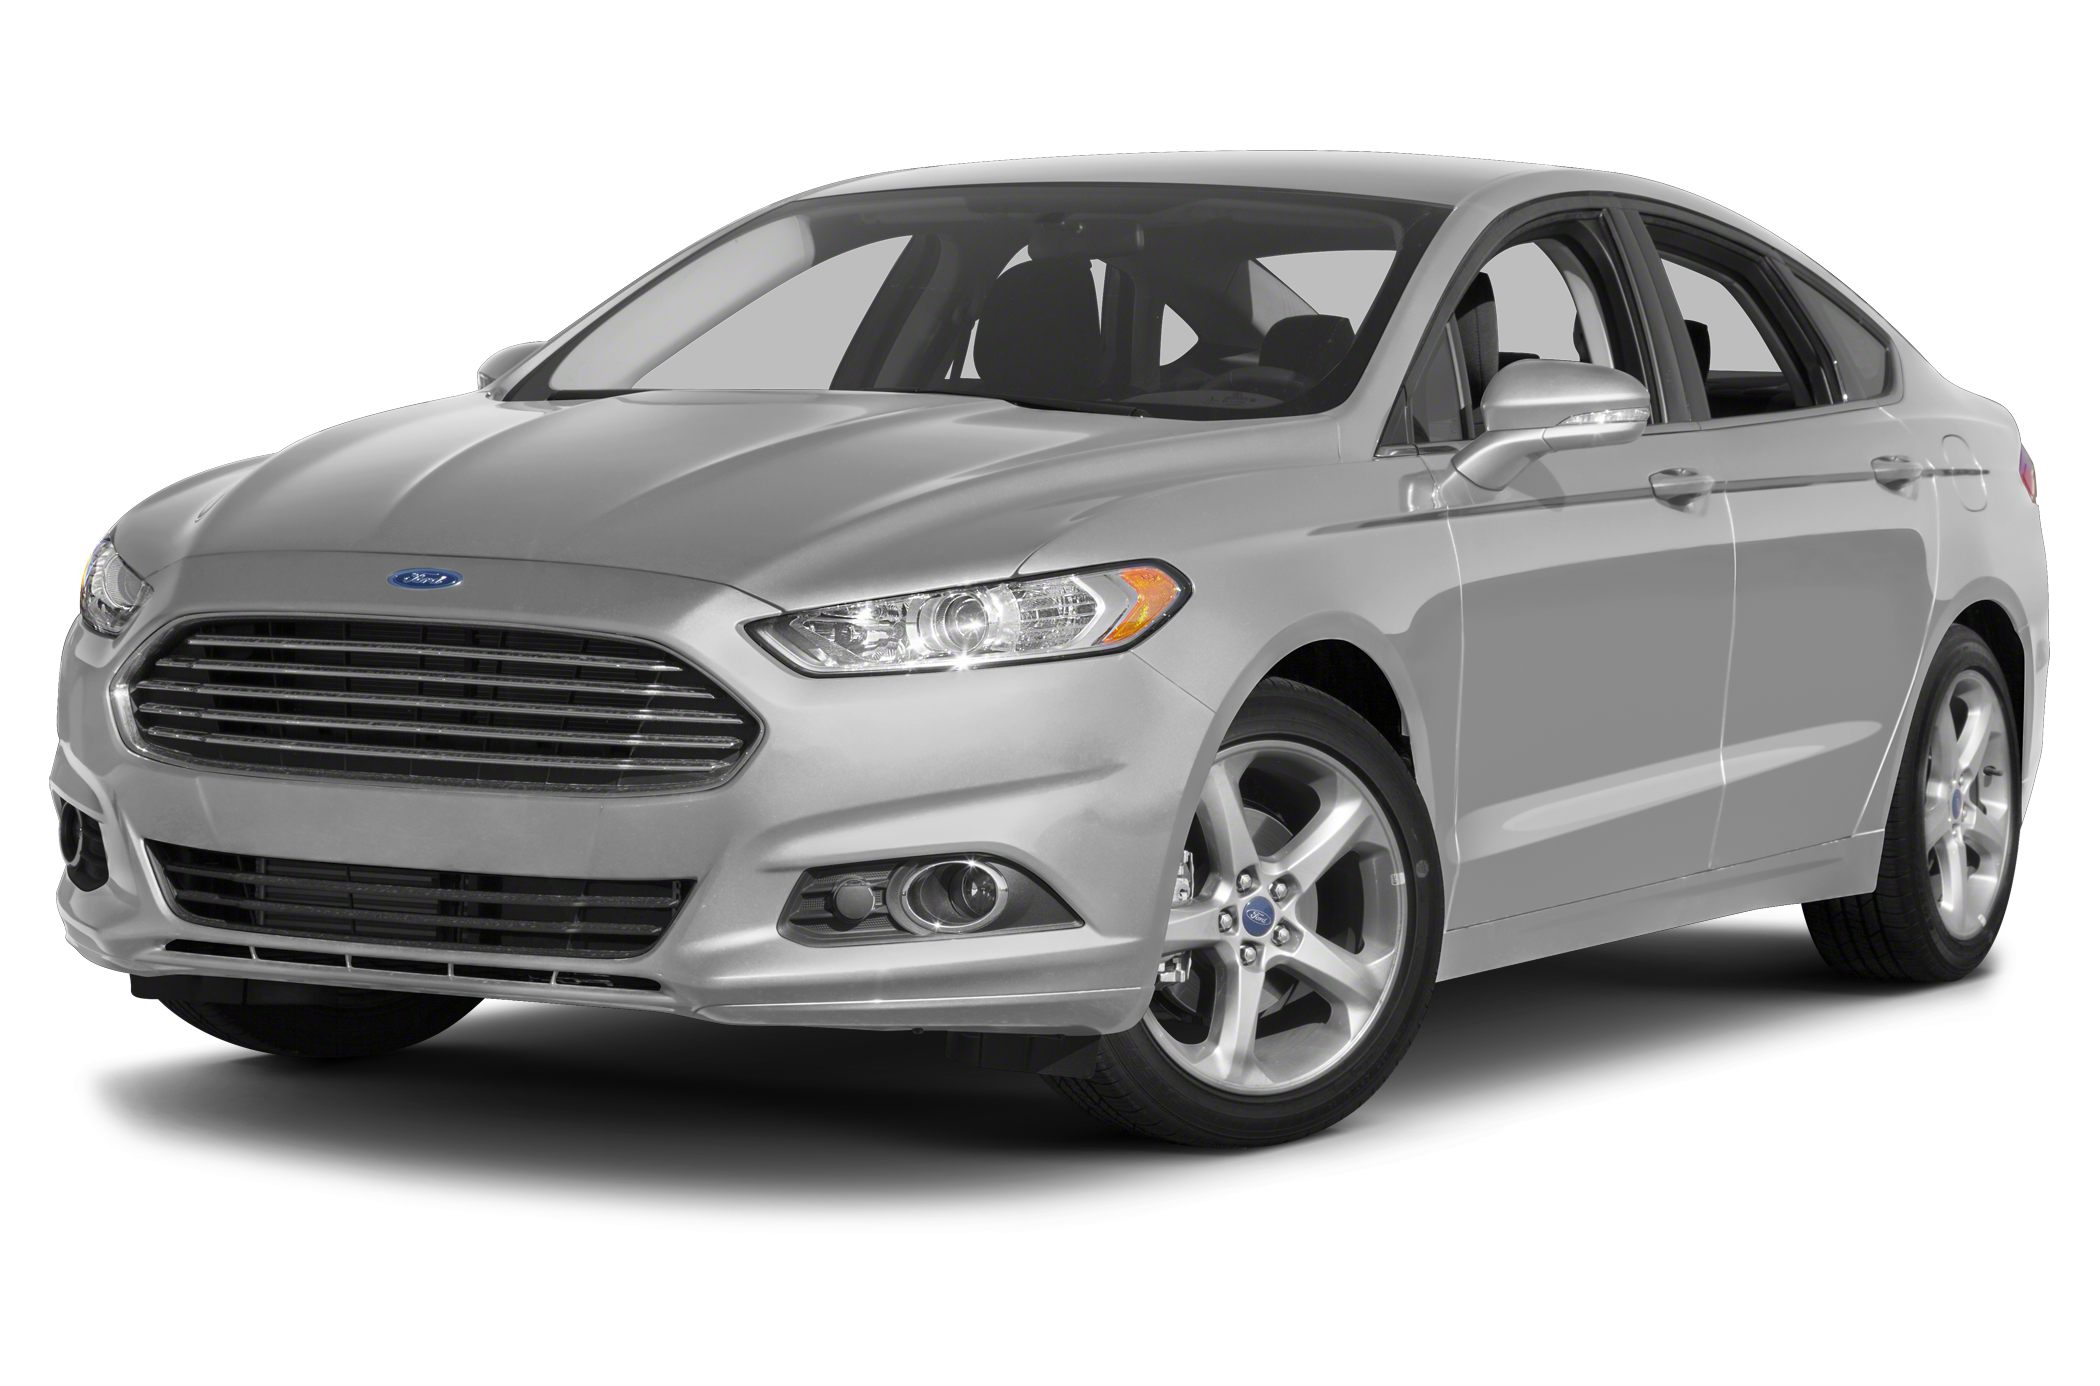 2013 Ford Fusion SE Certifed by CARFAX - NO ACCIDENTS FORD CERTIFIED Pre-Owned means you get a